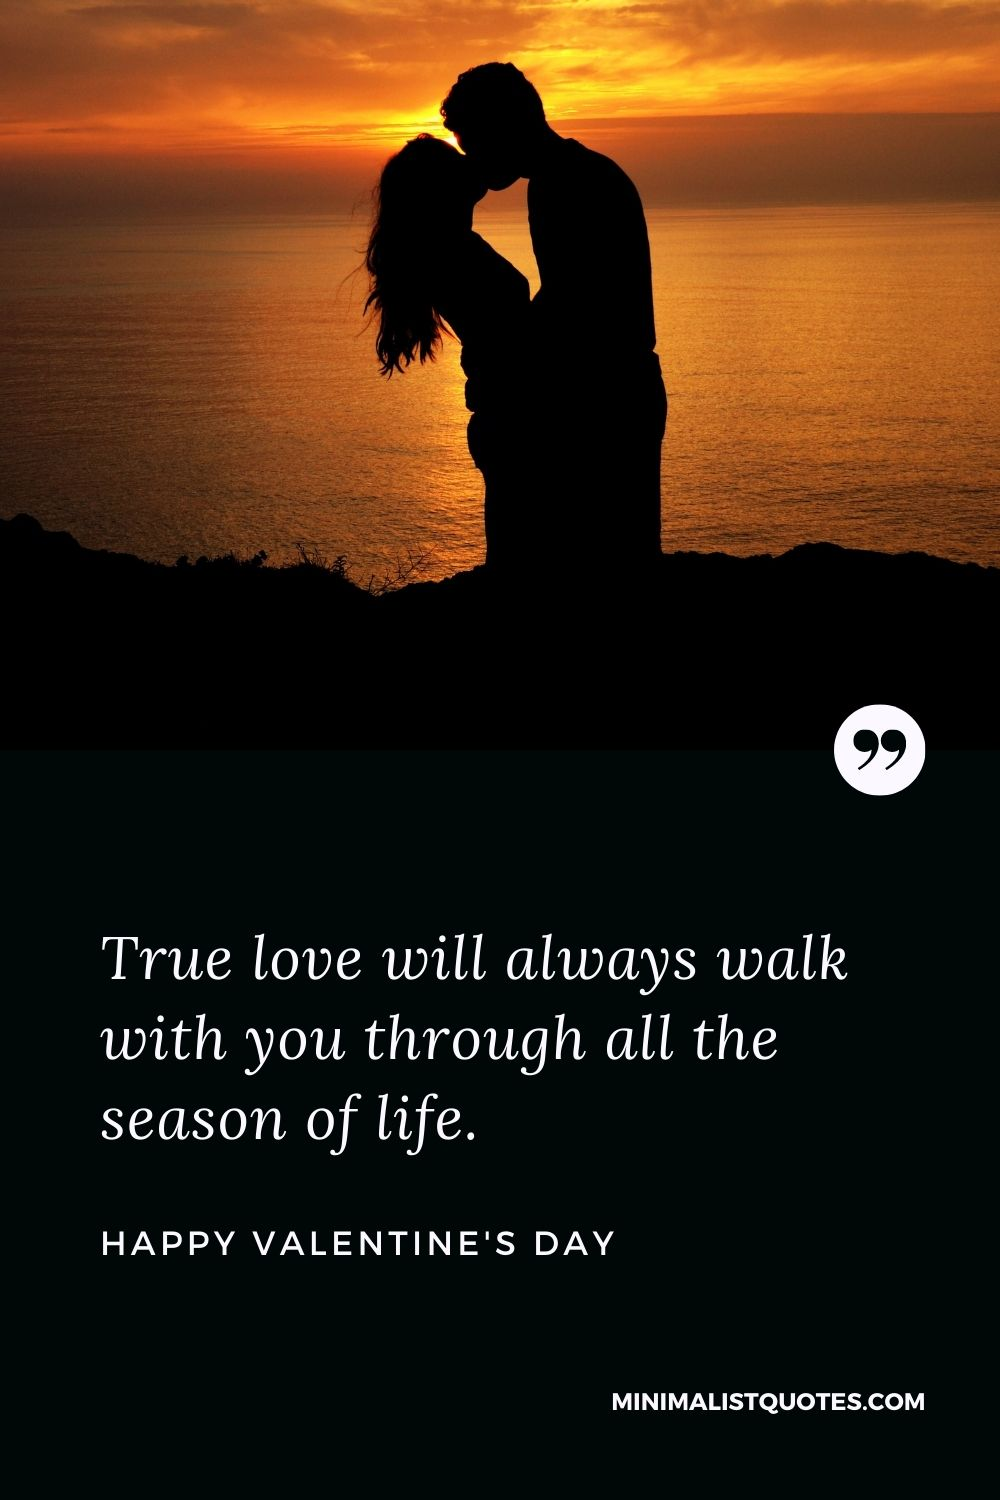 Valentine's Day Wishes - True love will always walk with you through all the season of life.